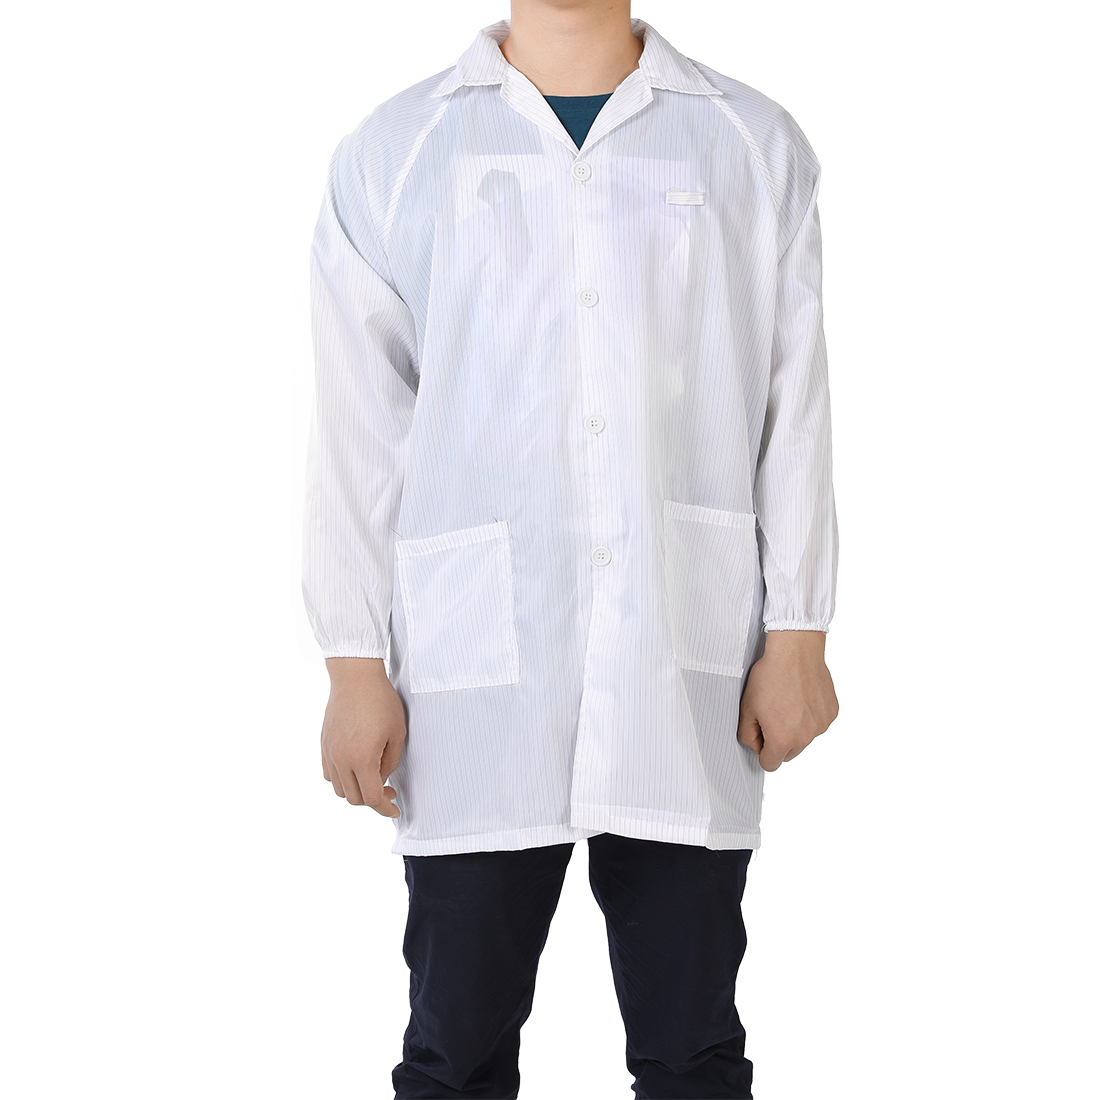 Anti Static Overalls Unisex ESD Lab Coat Button Up S White